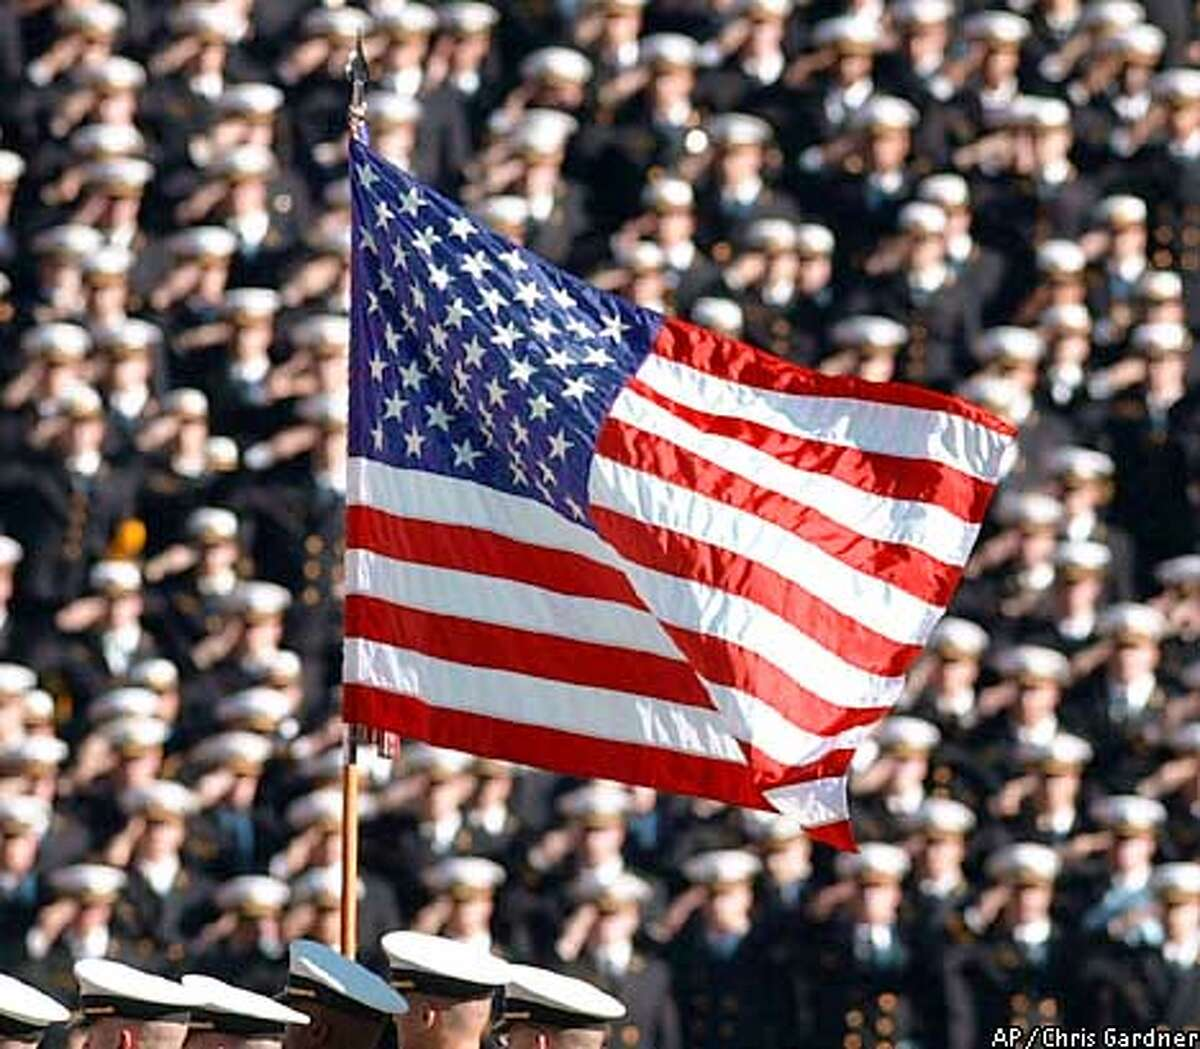 The American flag flies with a background of Navy midshipmen during the National Anthem at the 102nd Army Navy football game in Philadelphia Satuday, Dec. 1, 2001. (AP Photo/Chris Gardner)